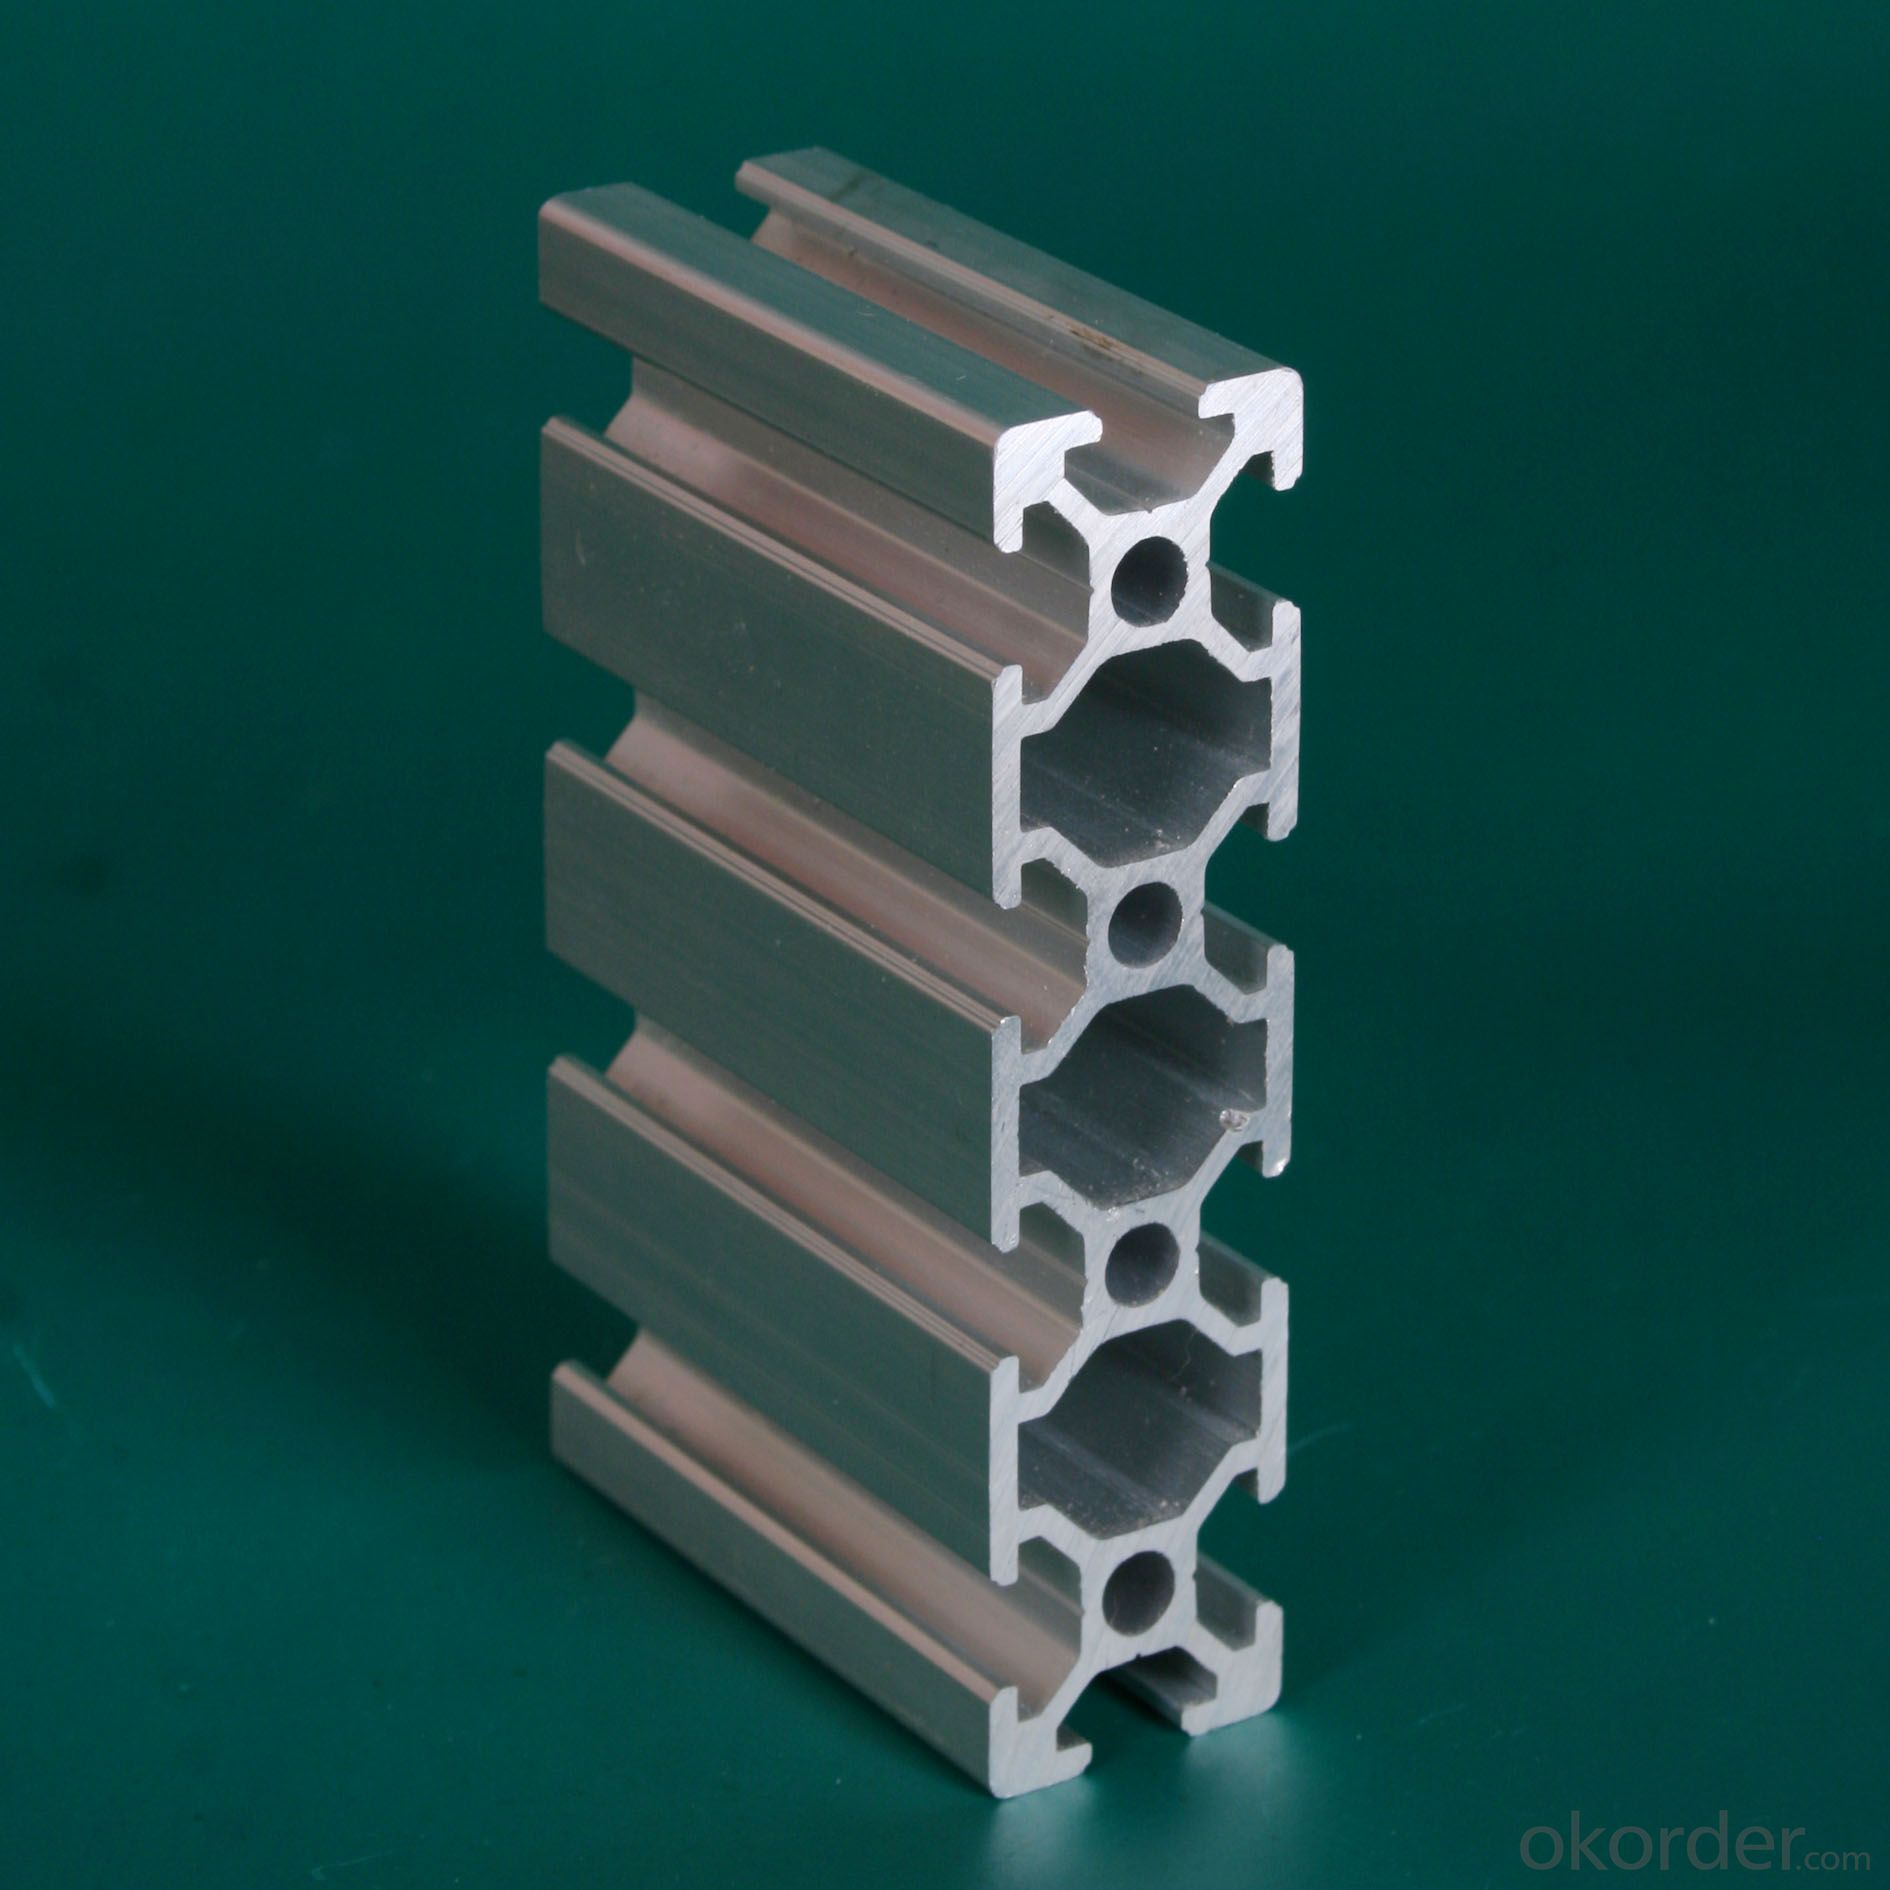 Alloy 7075 Aluminium Extrusion Profiles For Industrial Application